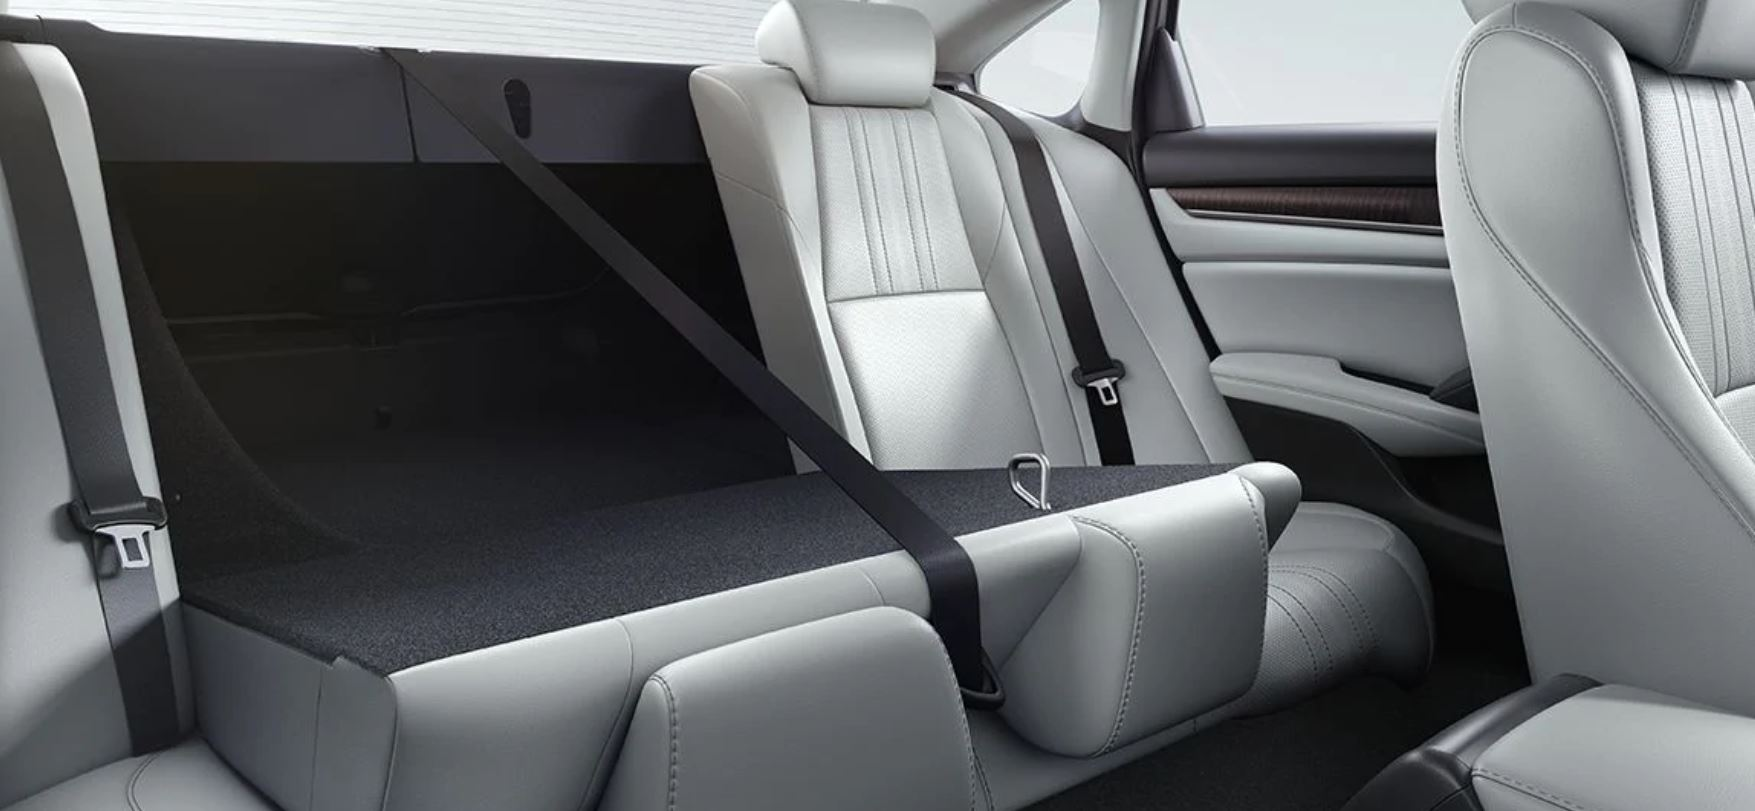 Versatile Seating in the 2020 Accord